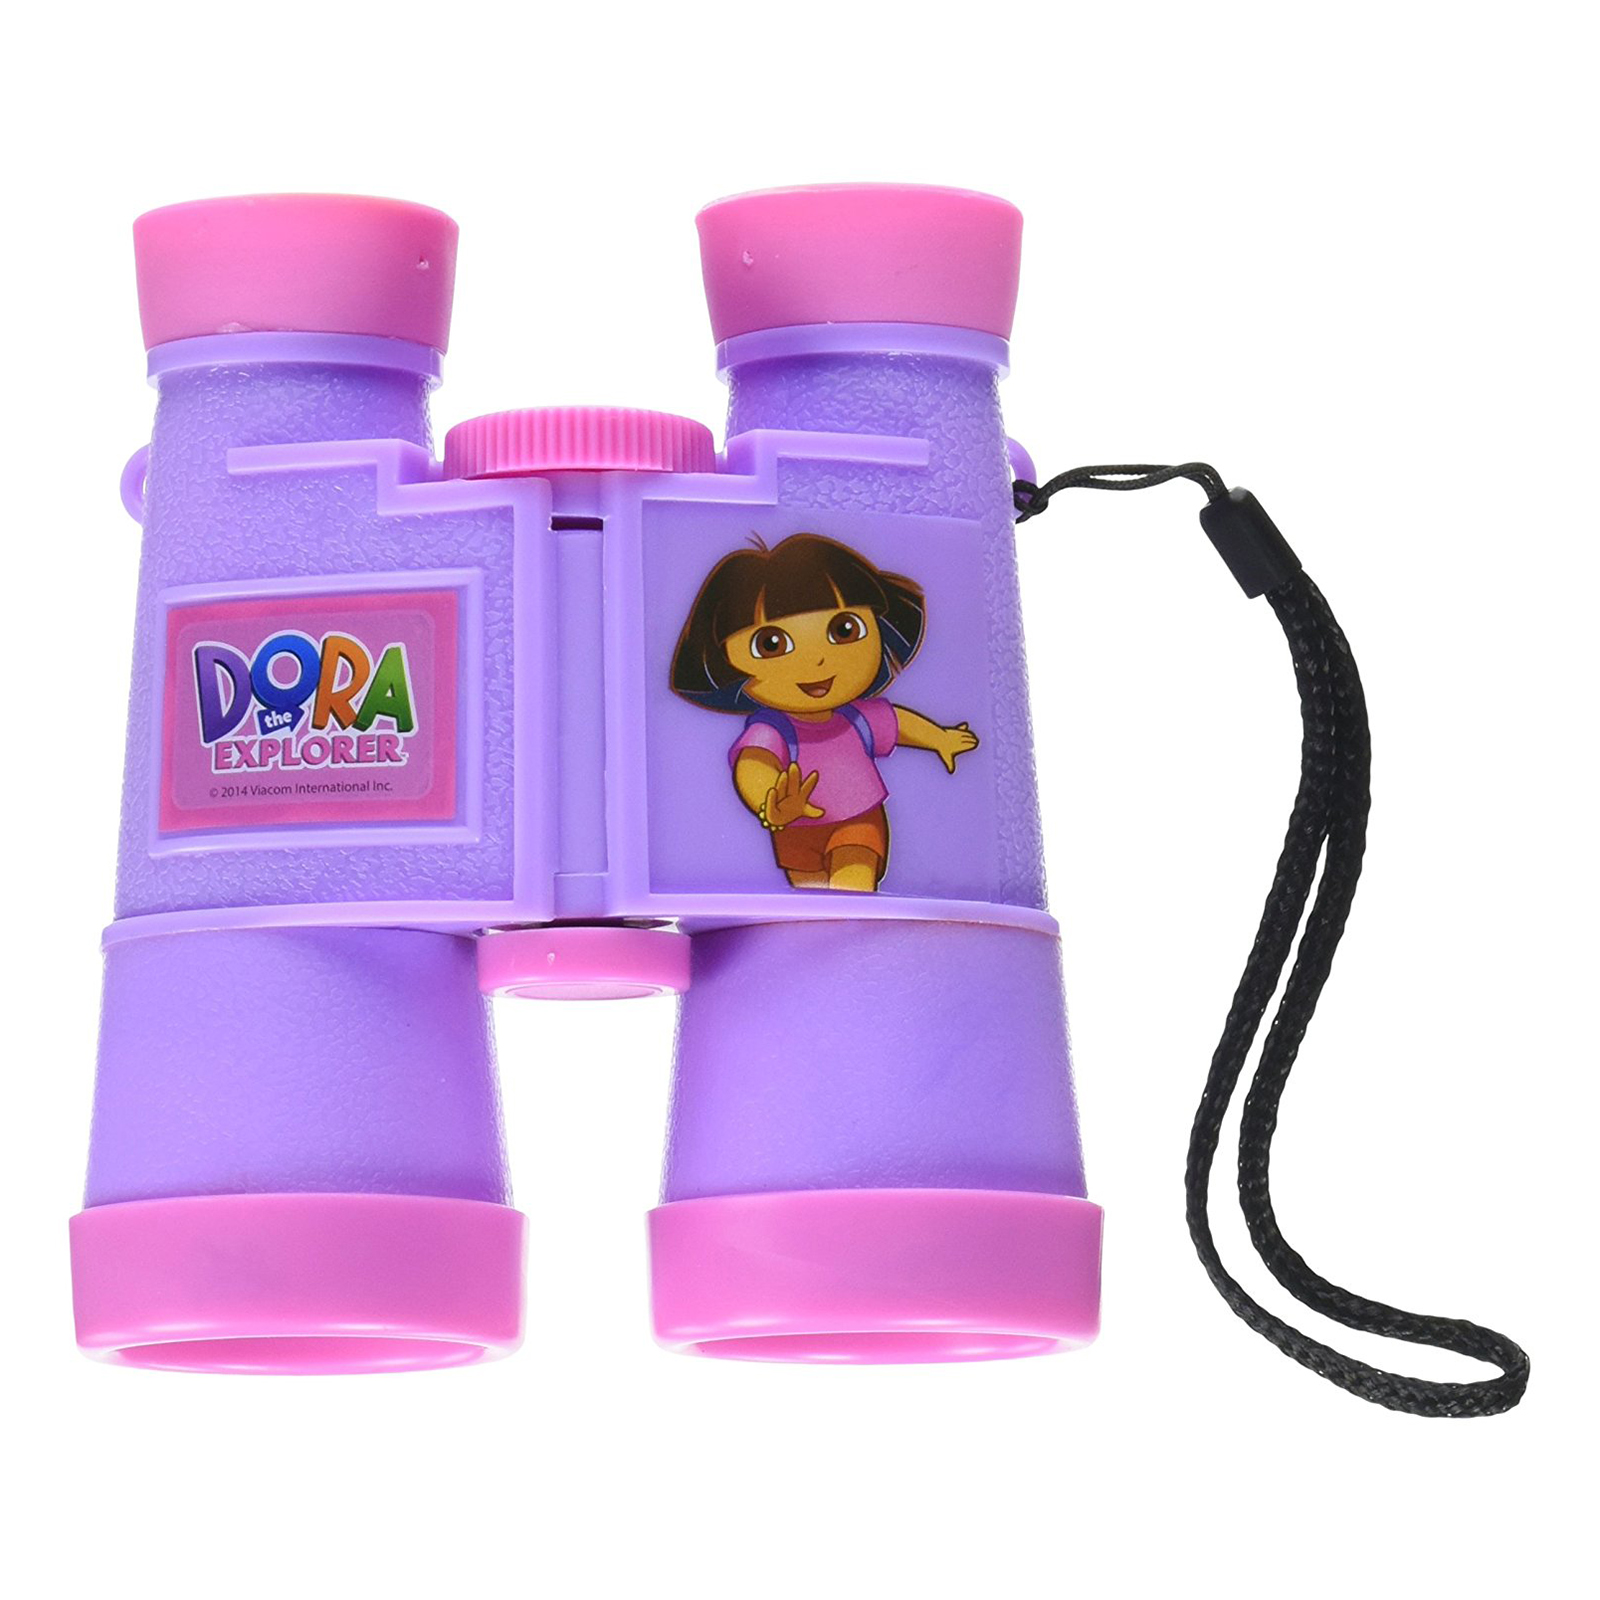 Dora The Explorer 7x35 Binoculars by Nickelodeon